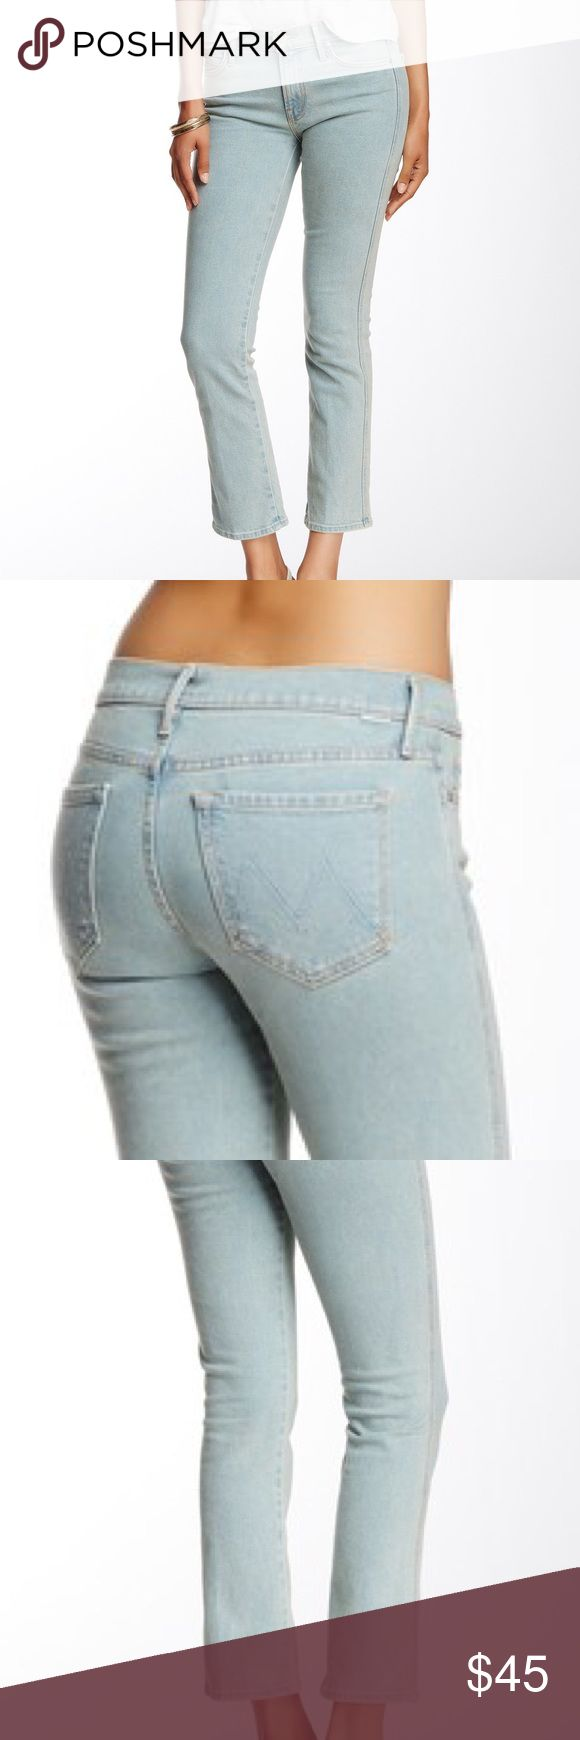 MOTHER The Rascal Ankle Worn once. Flat measurements: waist 14.5 in / inseam 26.75 in. Nordstrom Jeans Ankle & Cropped